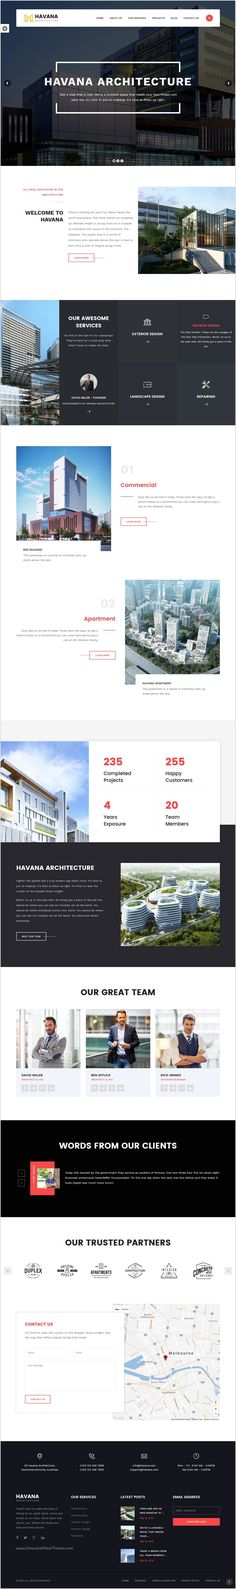 Havana is a clean, #minimal and stylish design responsive 3 in 1 #WordPress #theme perfect for architect and #interior design studio websites download now➩ https://themeforest.net/item/havana-architecture-interior-and-design-wordpress-theme/18047187?ref=Datasata